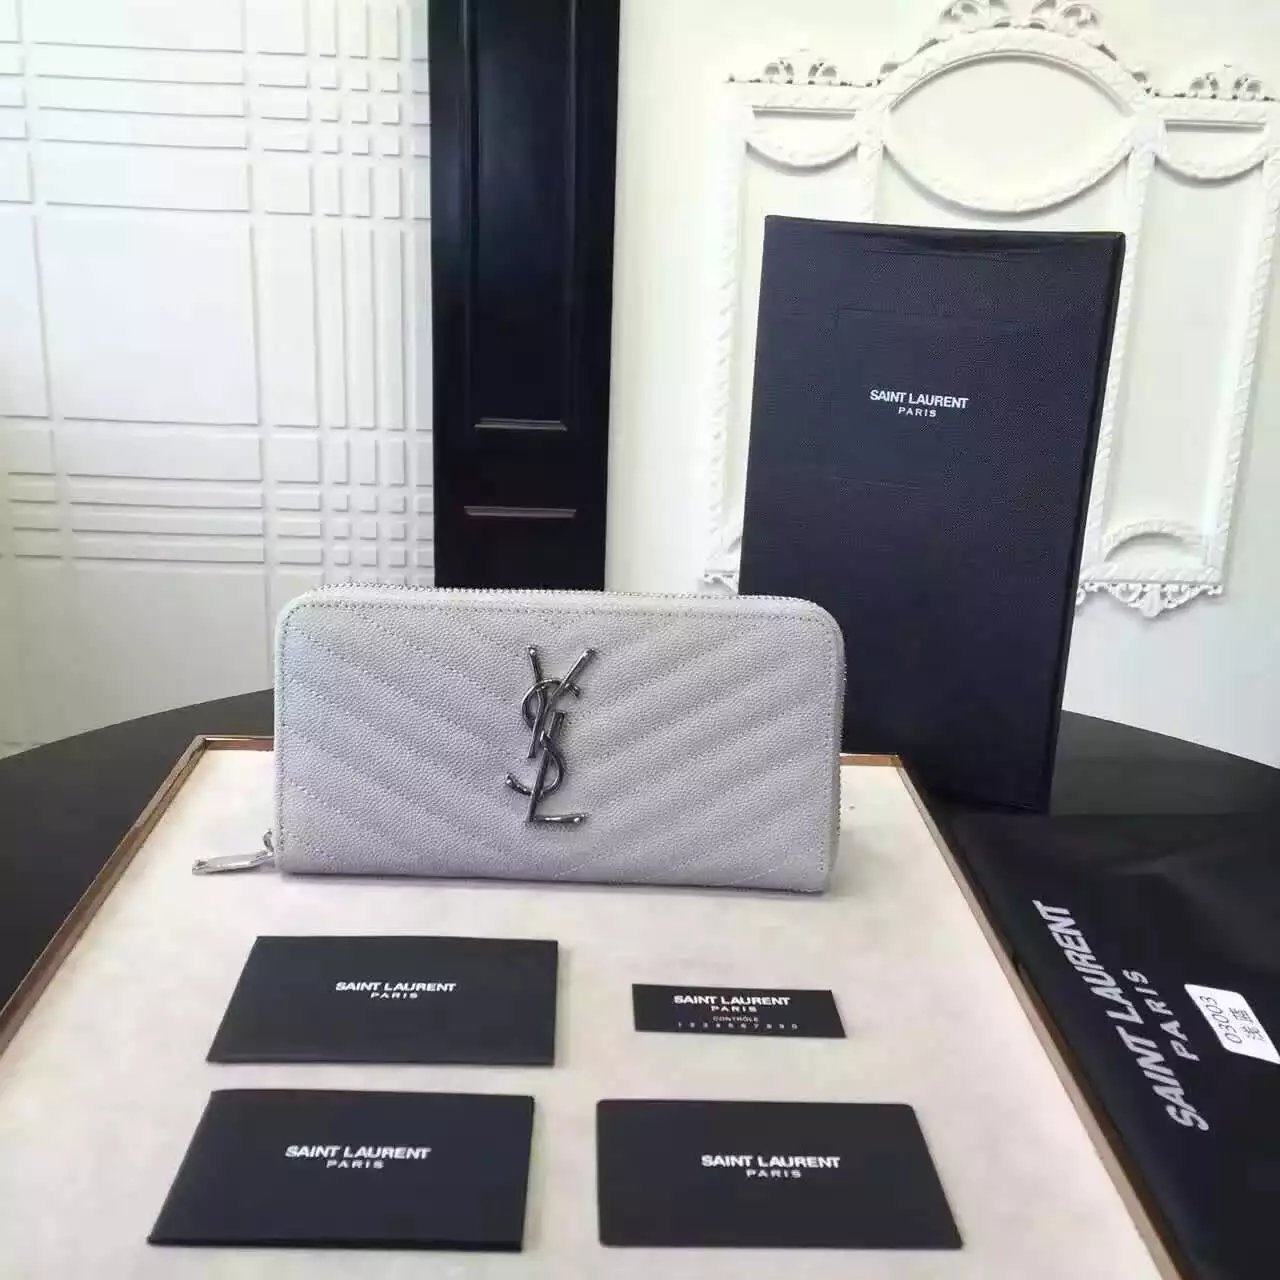 2016 Cheap YSL Out Sale with Free Shipping-Saint Laurent Monogram Zip Around Wallet in Light Grey Grain De Poudre Matelassé Textured Leather